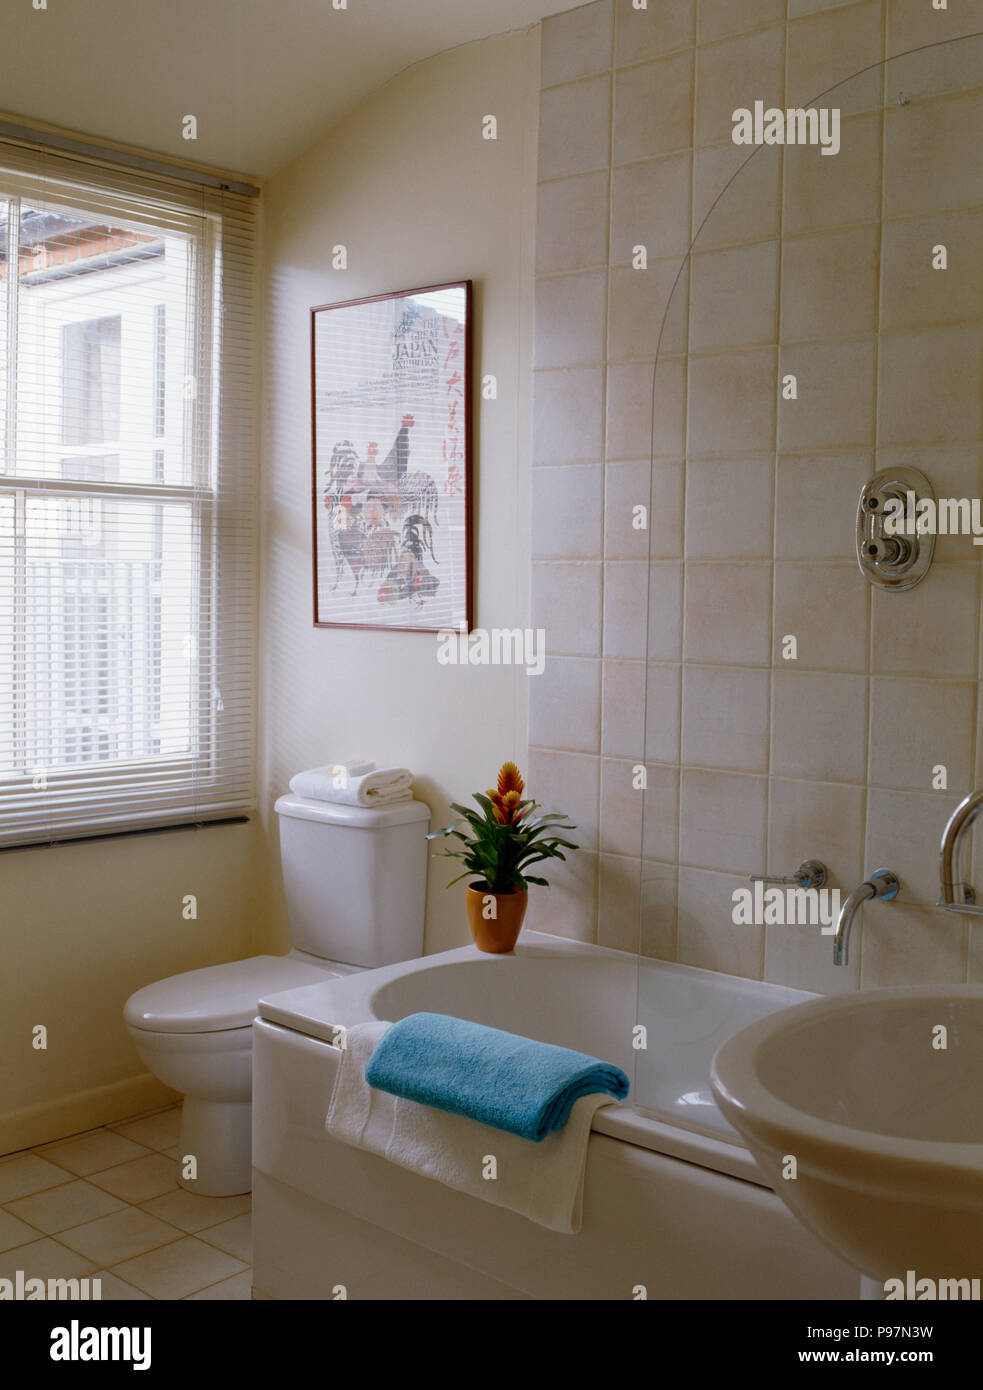 Small bathroom with glass shower screen on bath Stock Photo ...